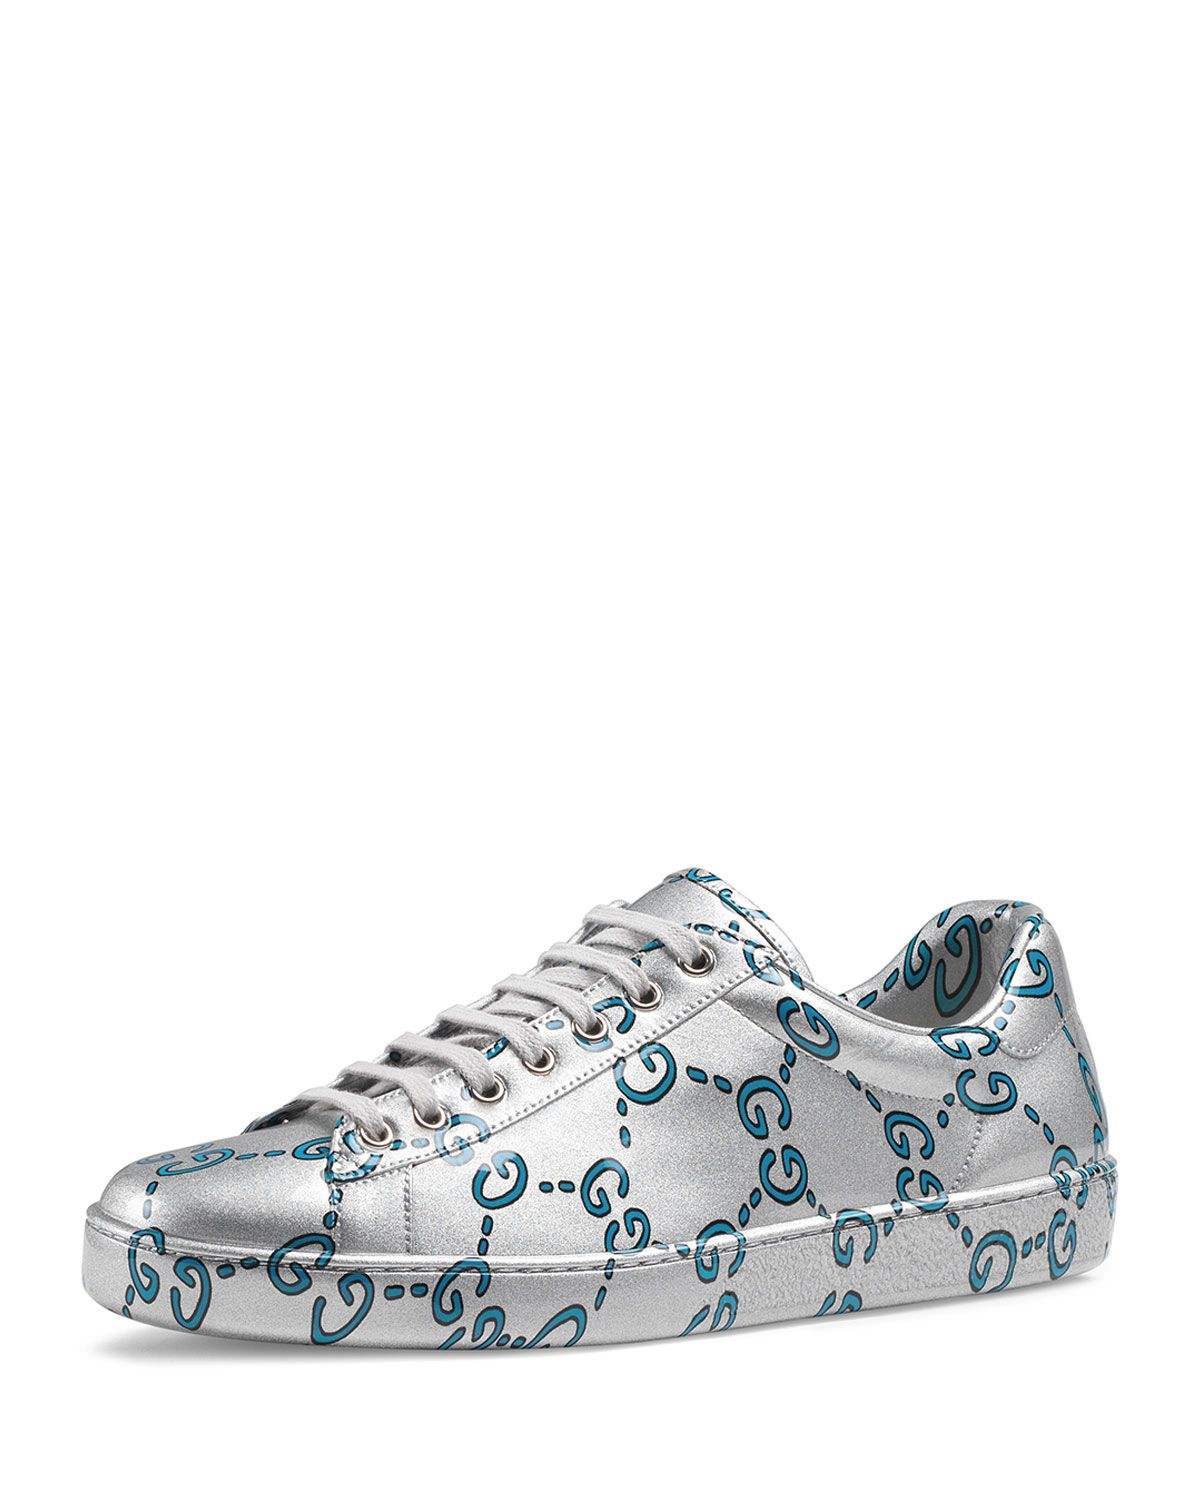 18dc67995 GUCCI MEN'S ACE GG COATED LEATHER SNEAKERS. #gucci #shoes   Gucci ...